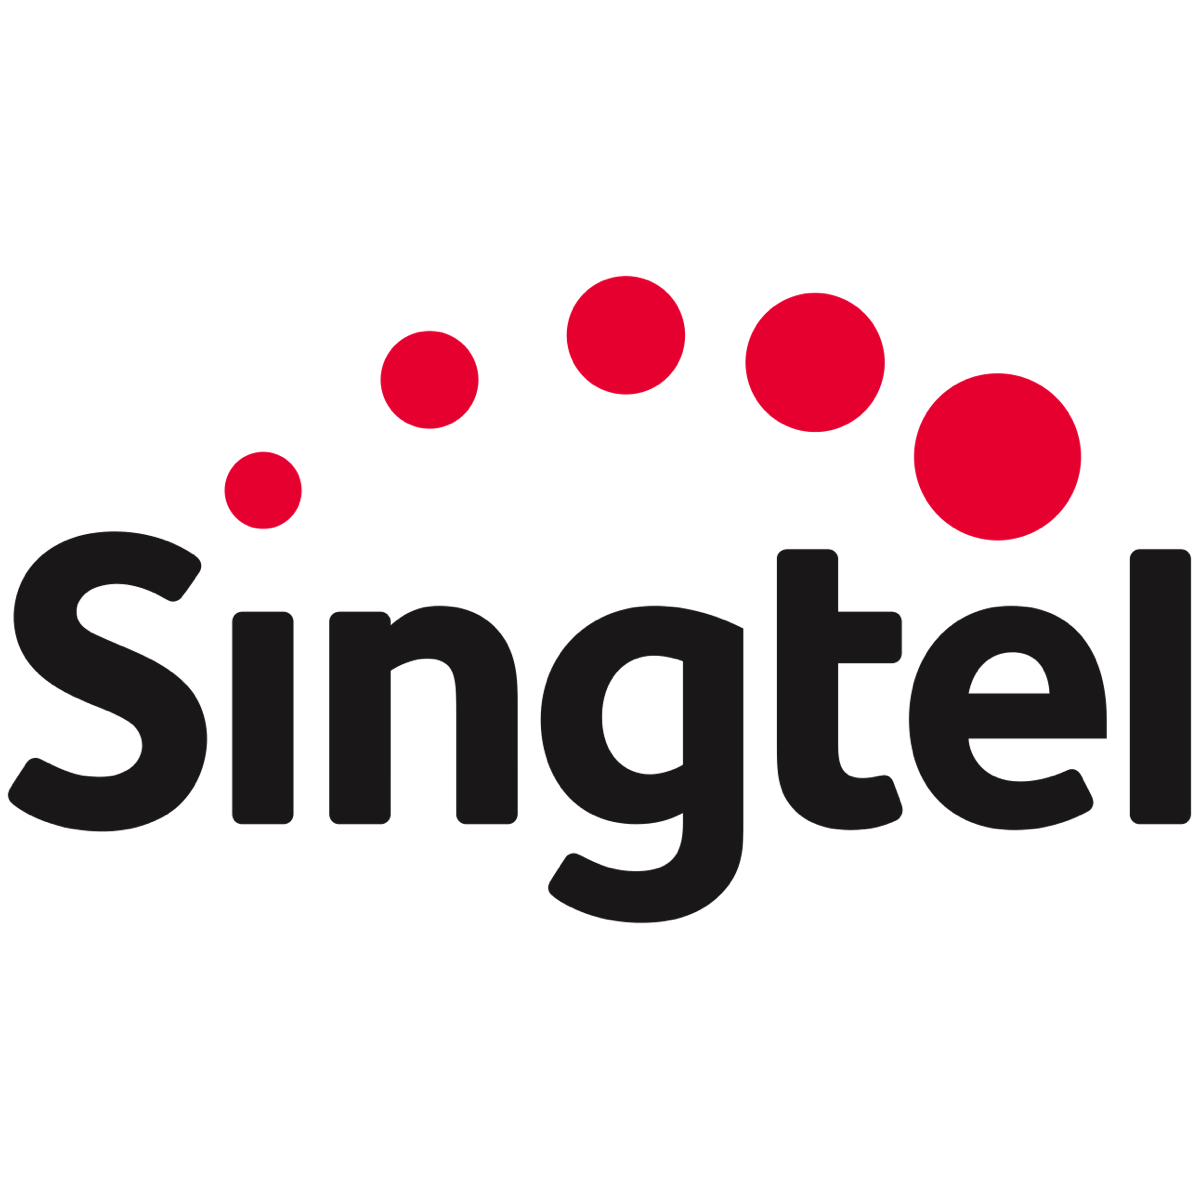 SingTel - DBS Vickers 2018-05-17: Commits To Fixed Dividends For Fy19f-20f